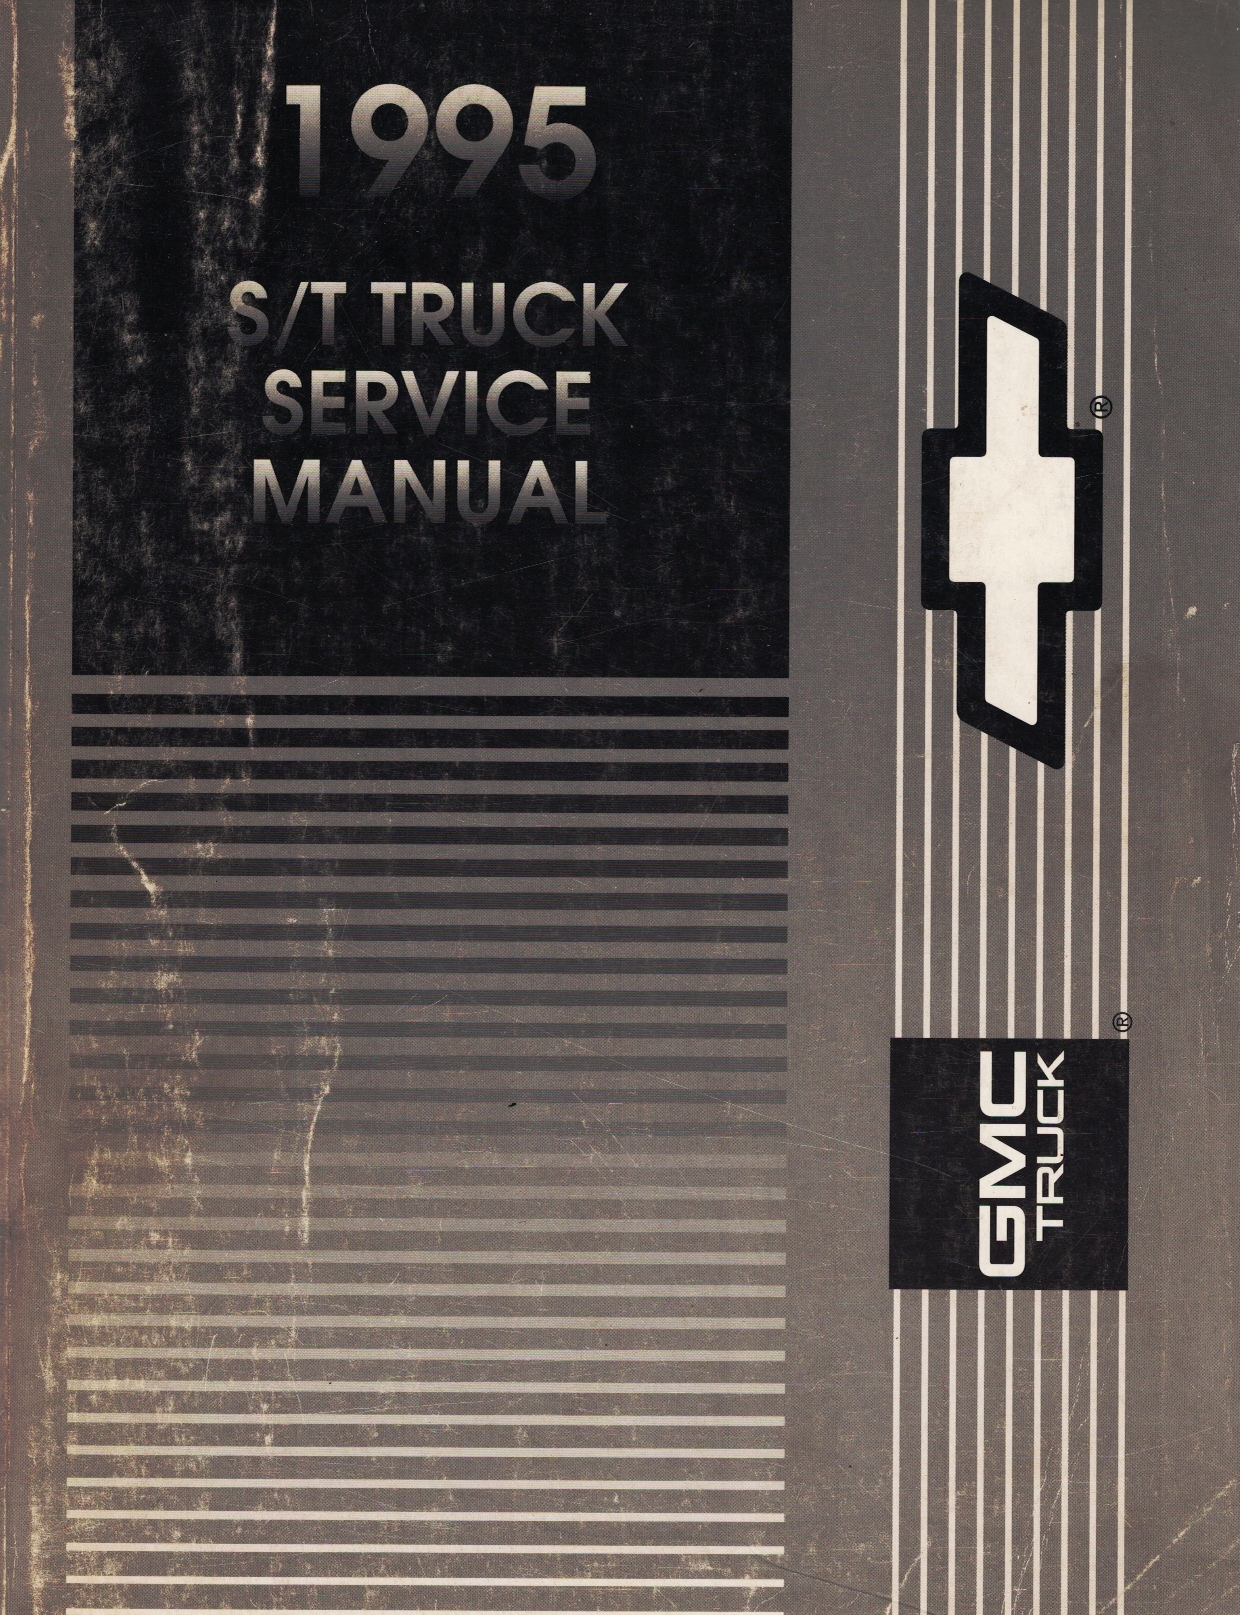 Image for 1995 Chevrolet, GMC Truck - S/T Truck Service Manual (Preliminary) - 3 volume set [S-10]